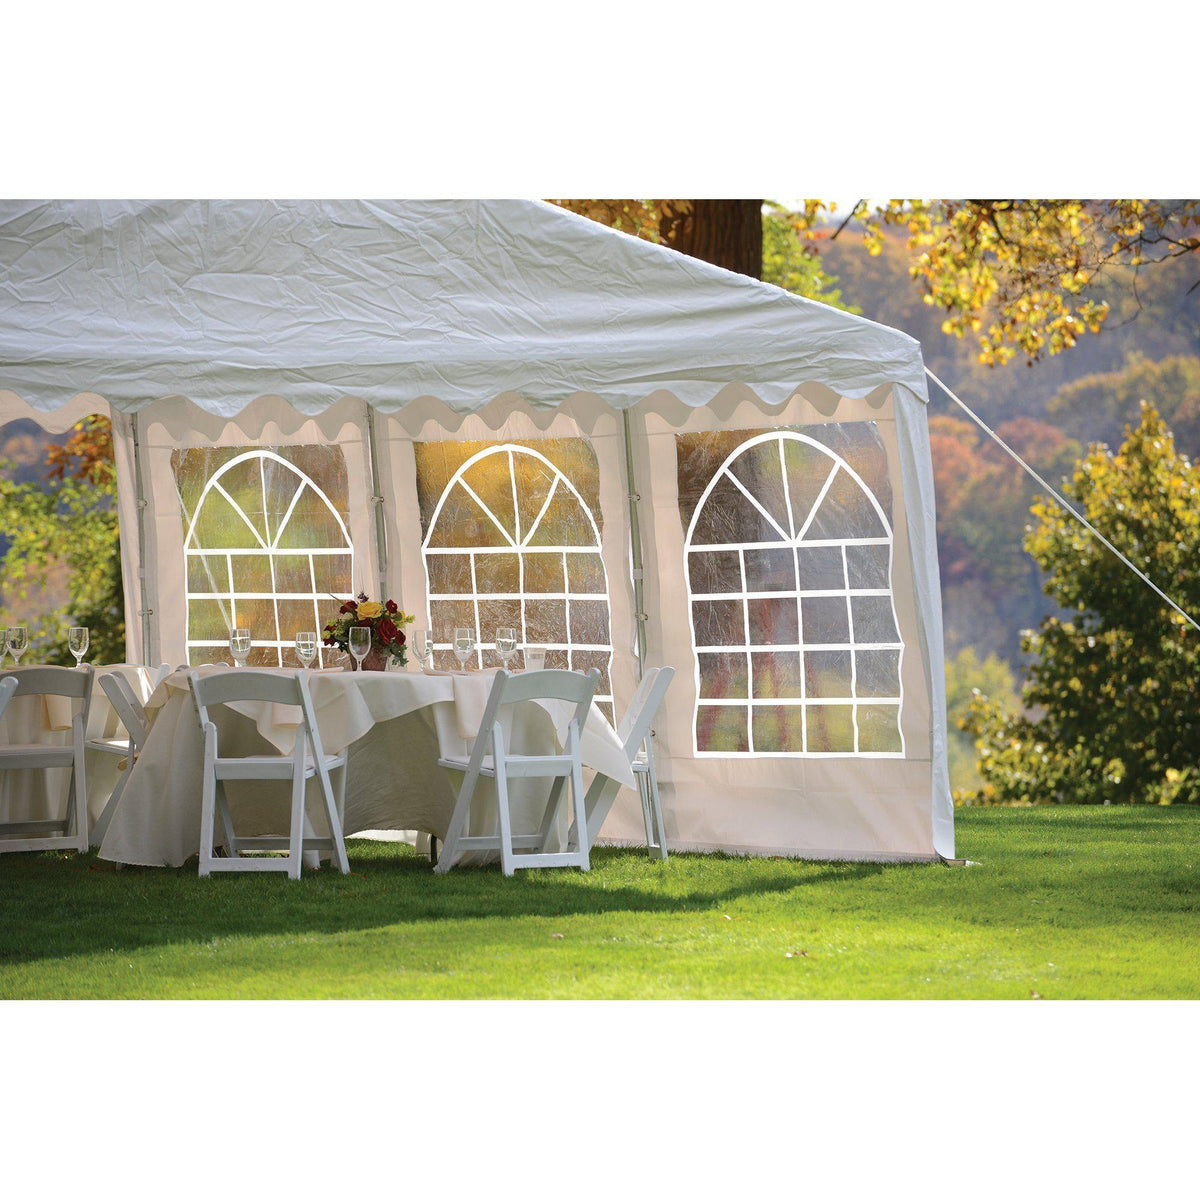 ShelterLogic Party Tent with Enclosure Kit, White, 10 x 20 ft.